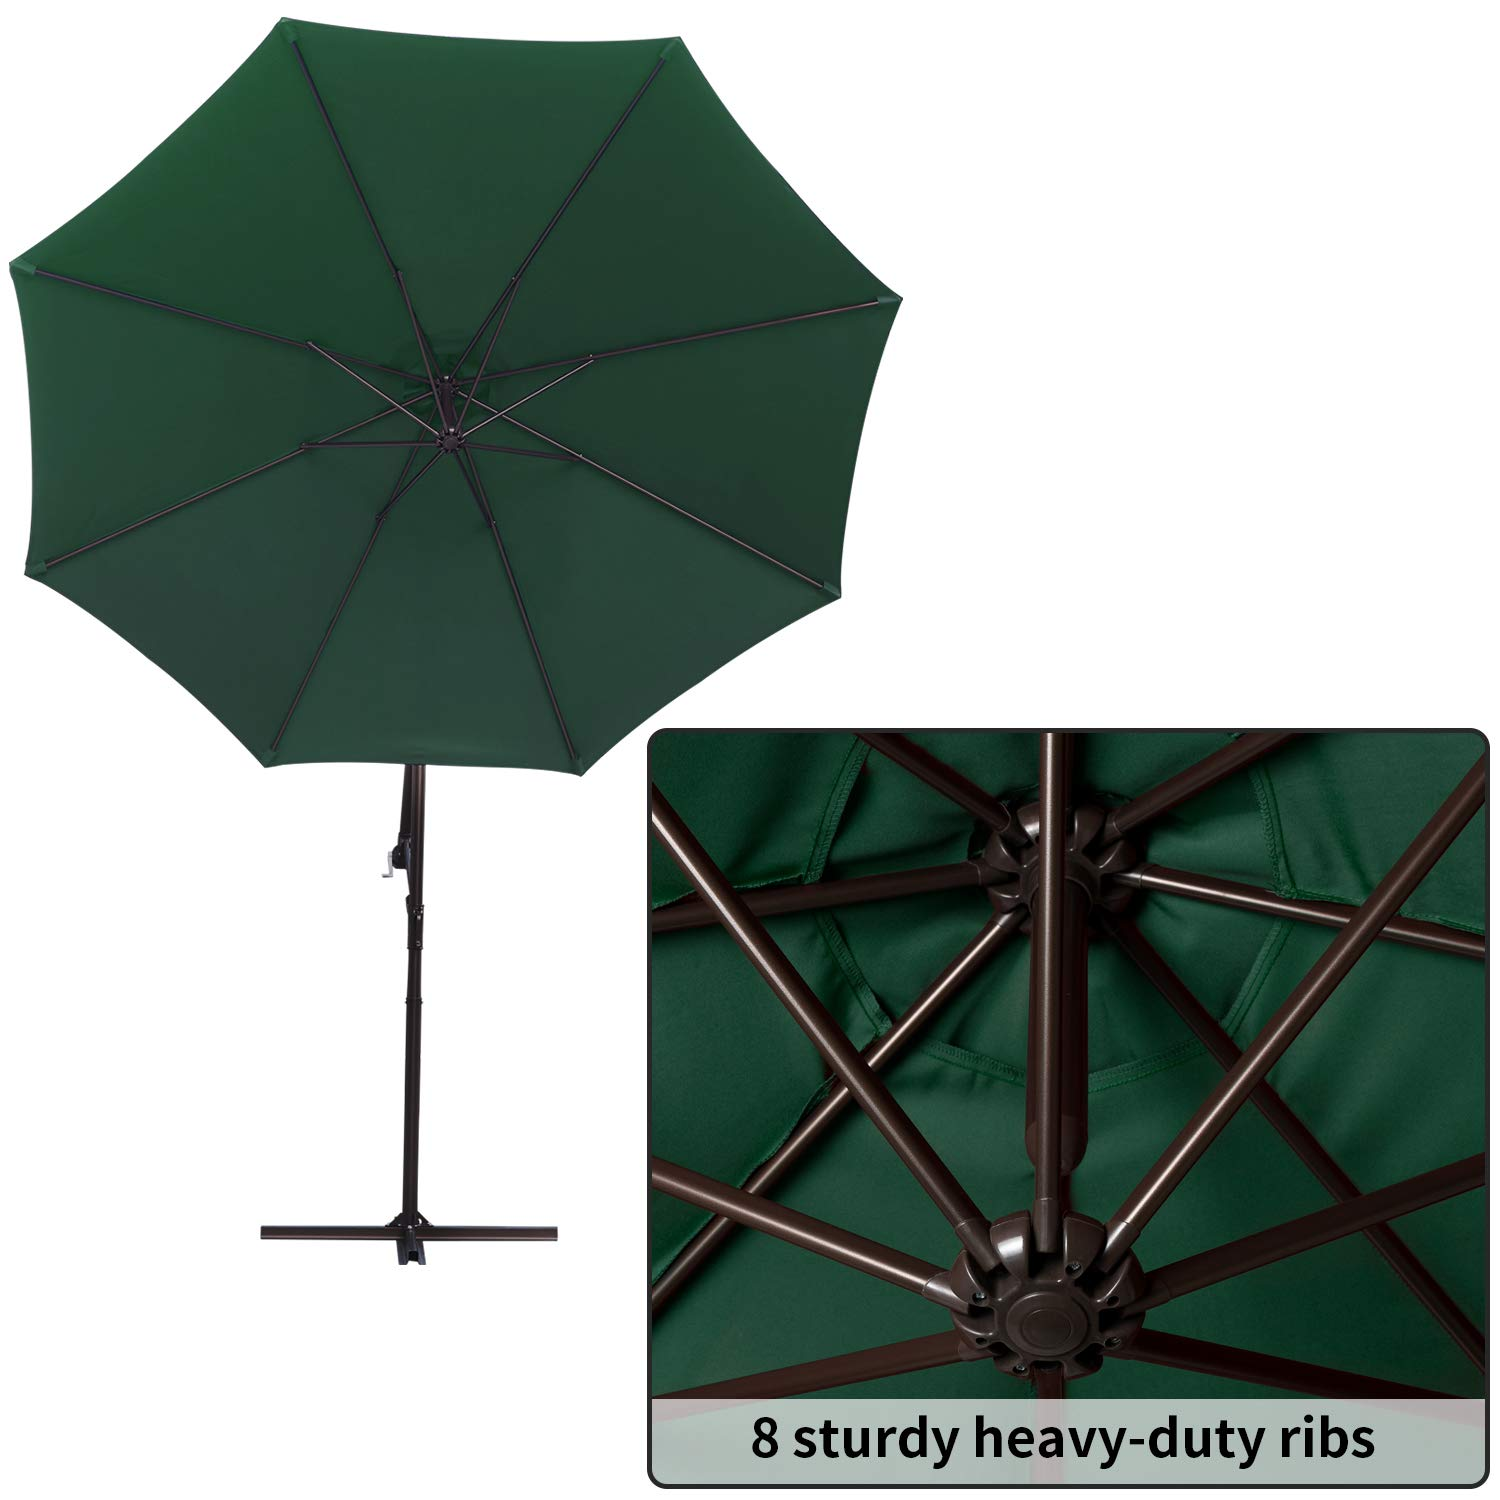 RUBEDER Offset Umbrella - 10Ft Cantilever Patio Hanging Umbrella,Outdoor Market Umbrellas with Crank Lift & Cross Base (10 Ft, Dark Green) by RUBEDER (Image #3)